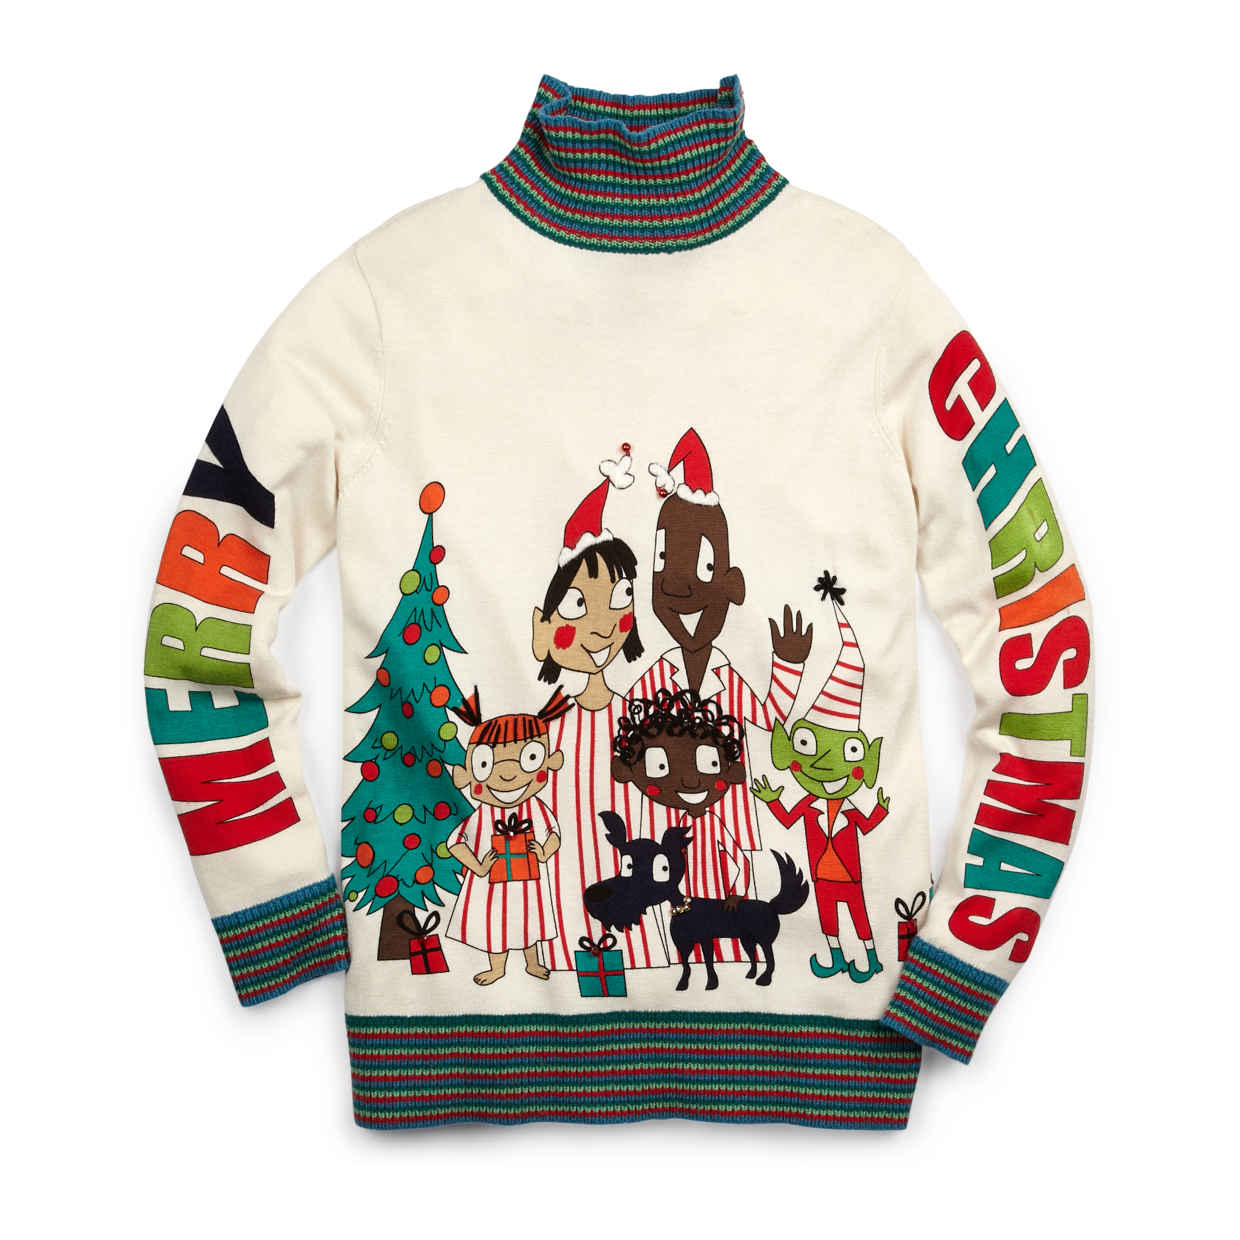 Whoopi Goldberg's All Together Now sweater.